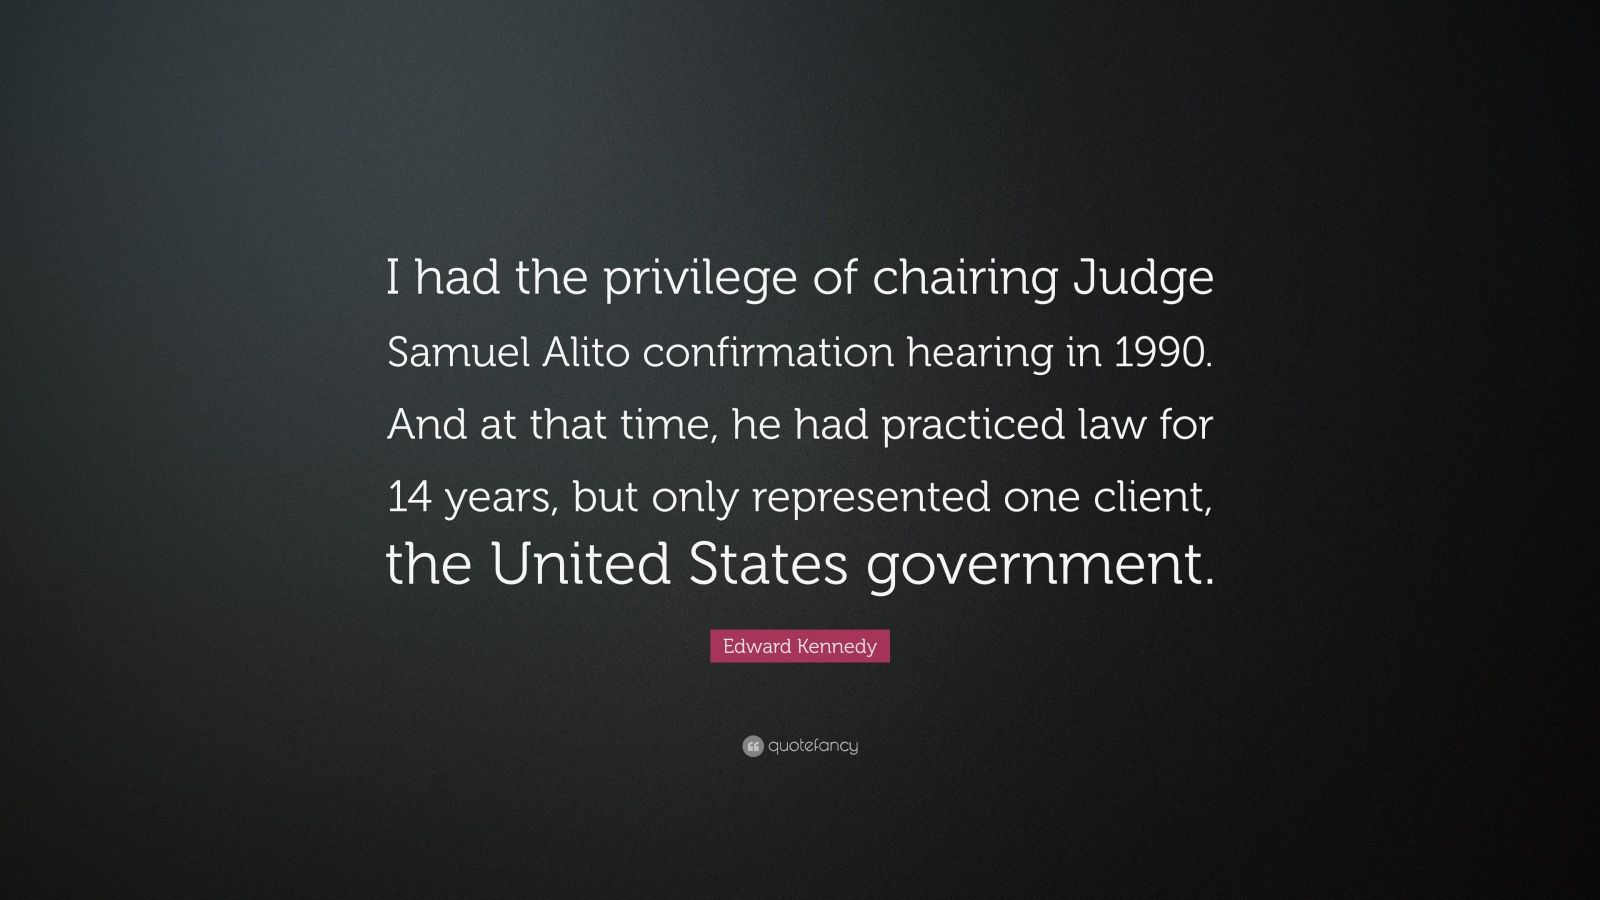 """Edward Kennedy Quote: """"I had the privilege of chairing Judge Samuel Alito confirmation hearing in 1990. And at that time, he had practiced law for 14 years, but only represented one client, the United States government."""""""